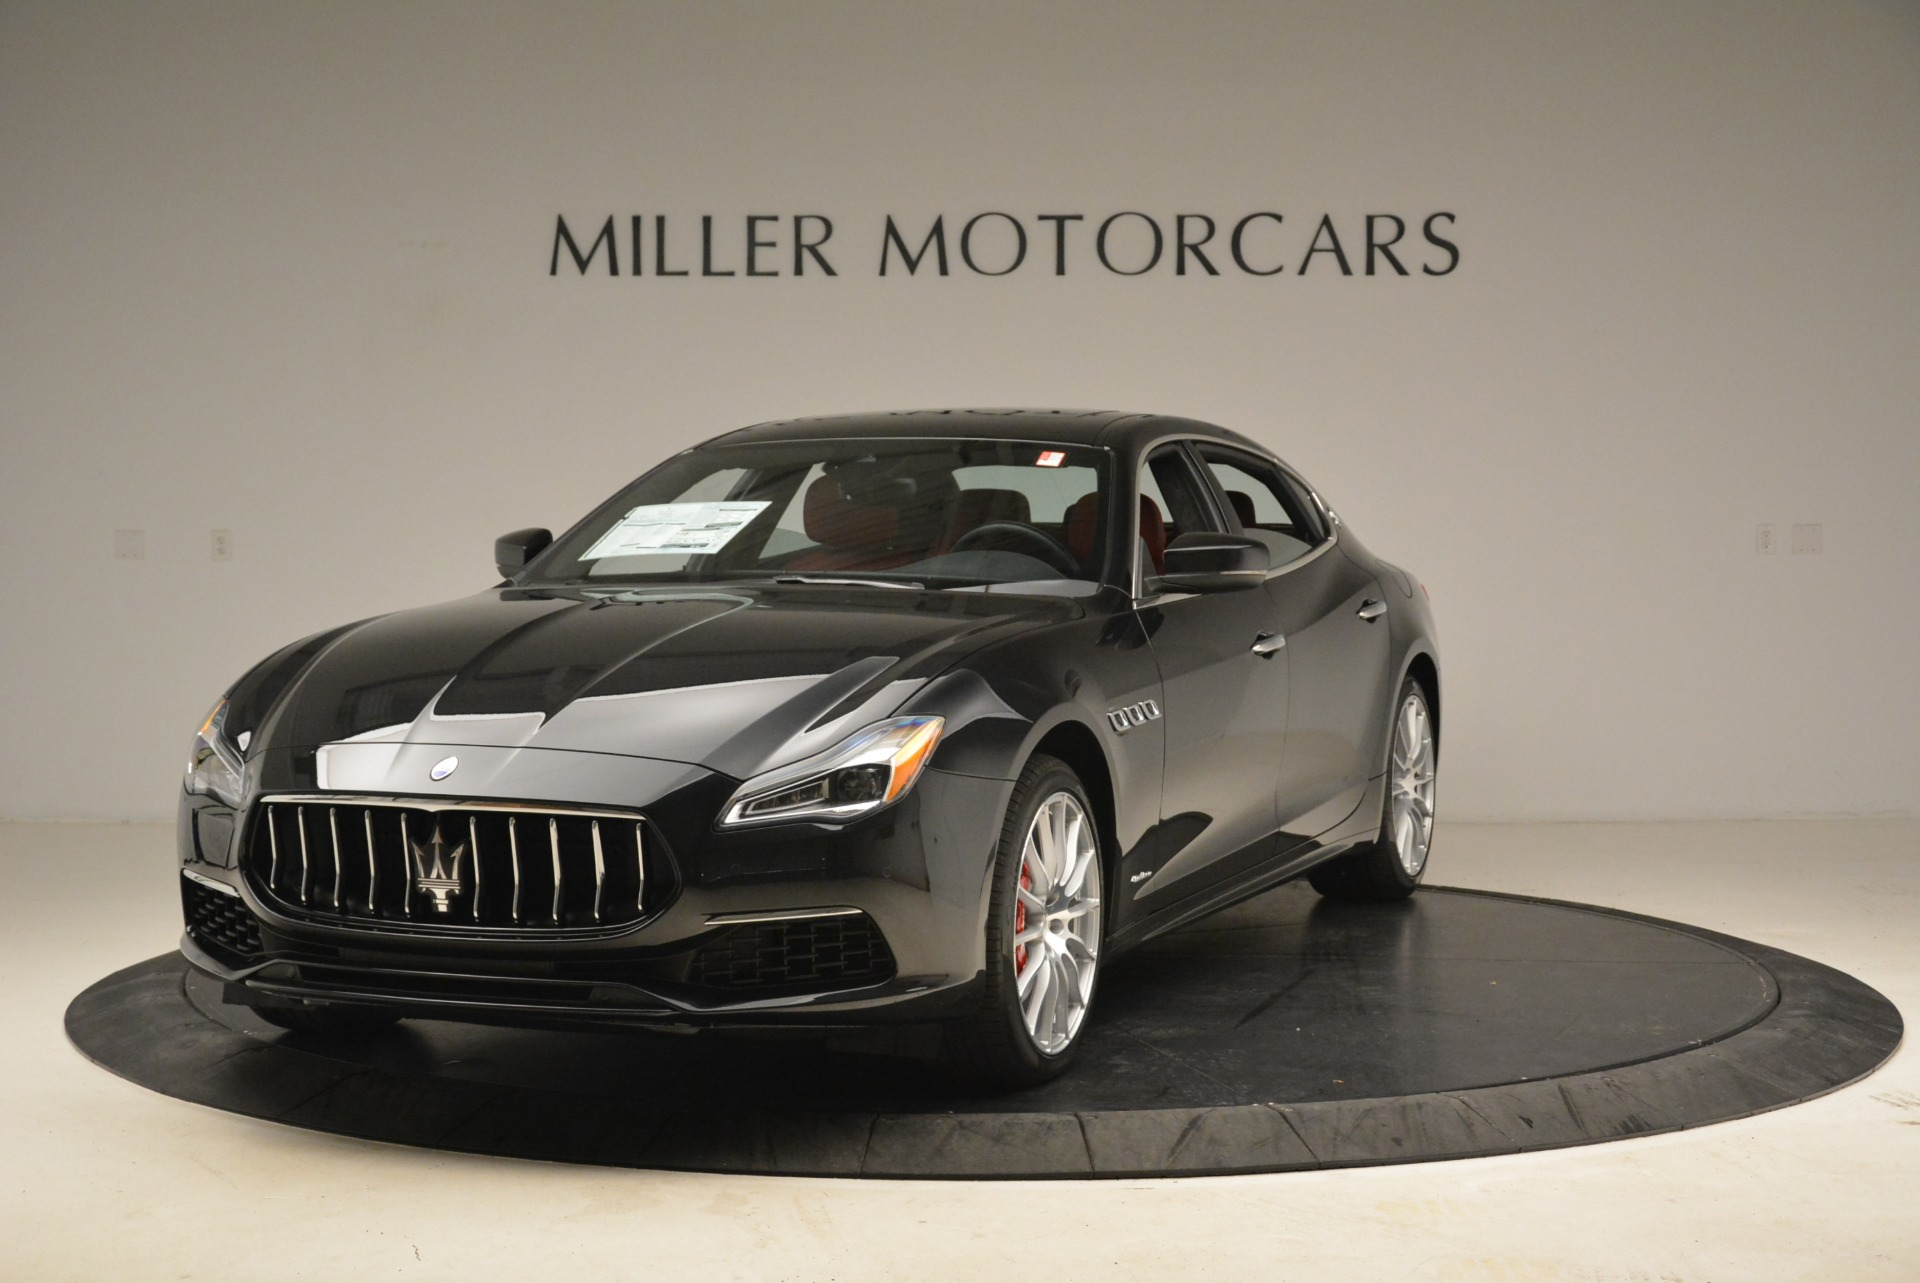 New 2018 Maserati Quattroporte S Q4 GranLusso for sale Sold at Maserati of Greenwich in Greenwich CT 06830 1